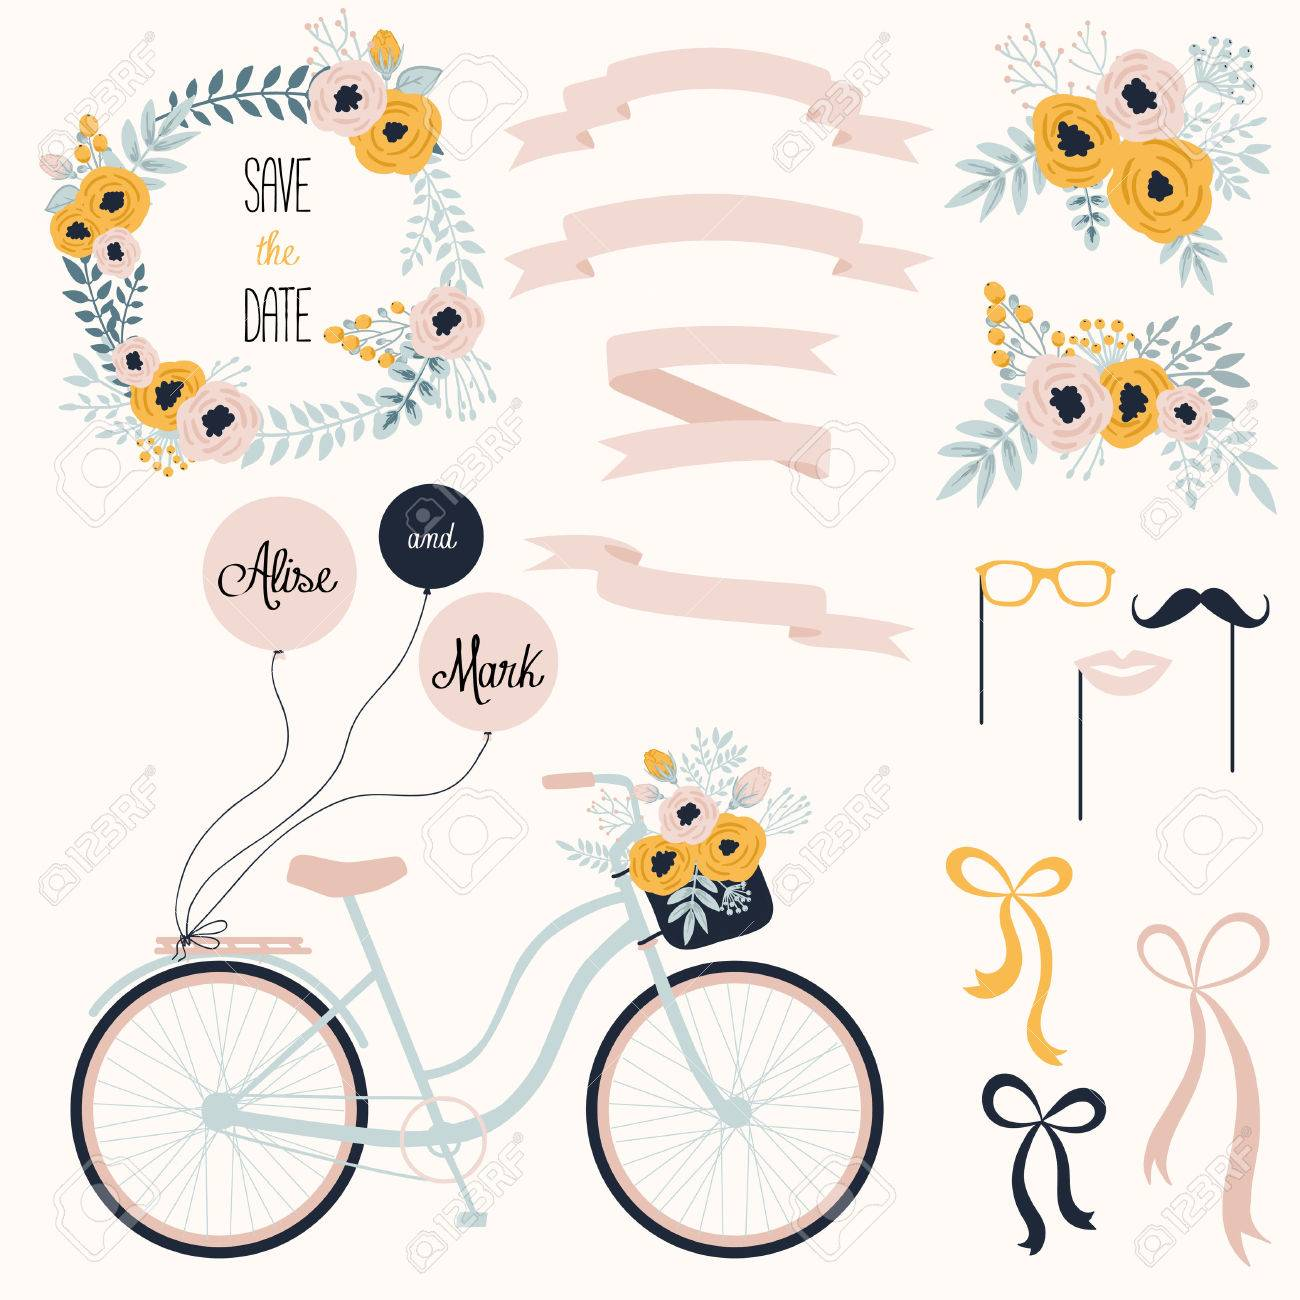 Vector wedding set with summer flowers, ribbons and bicycle. Vector illustration. Vintage collection. Stock Vector - 45712931